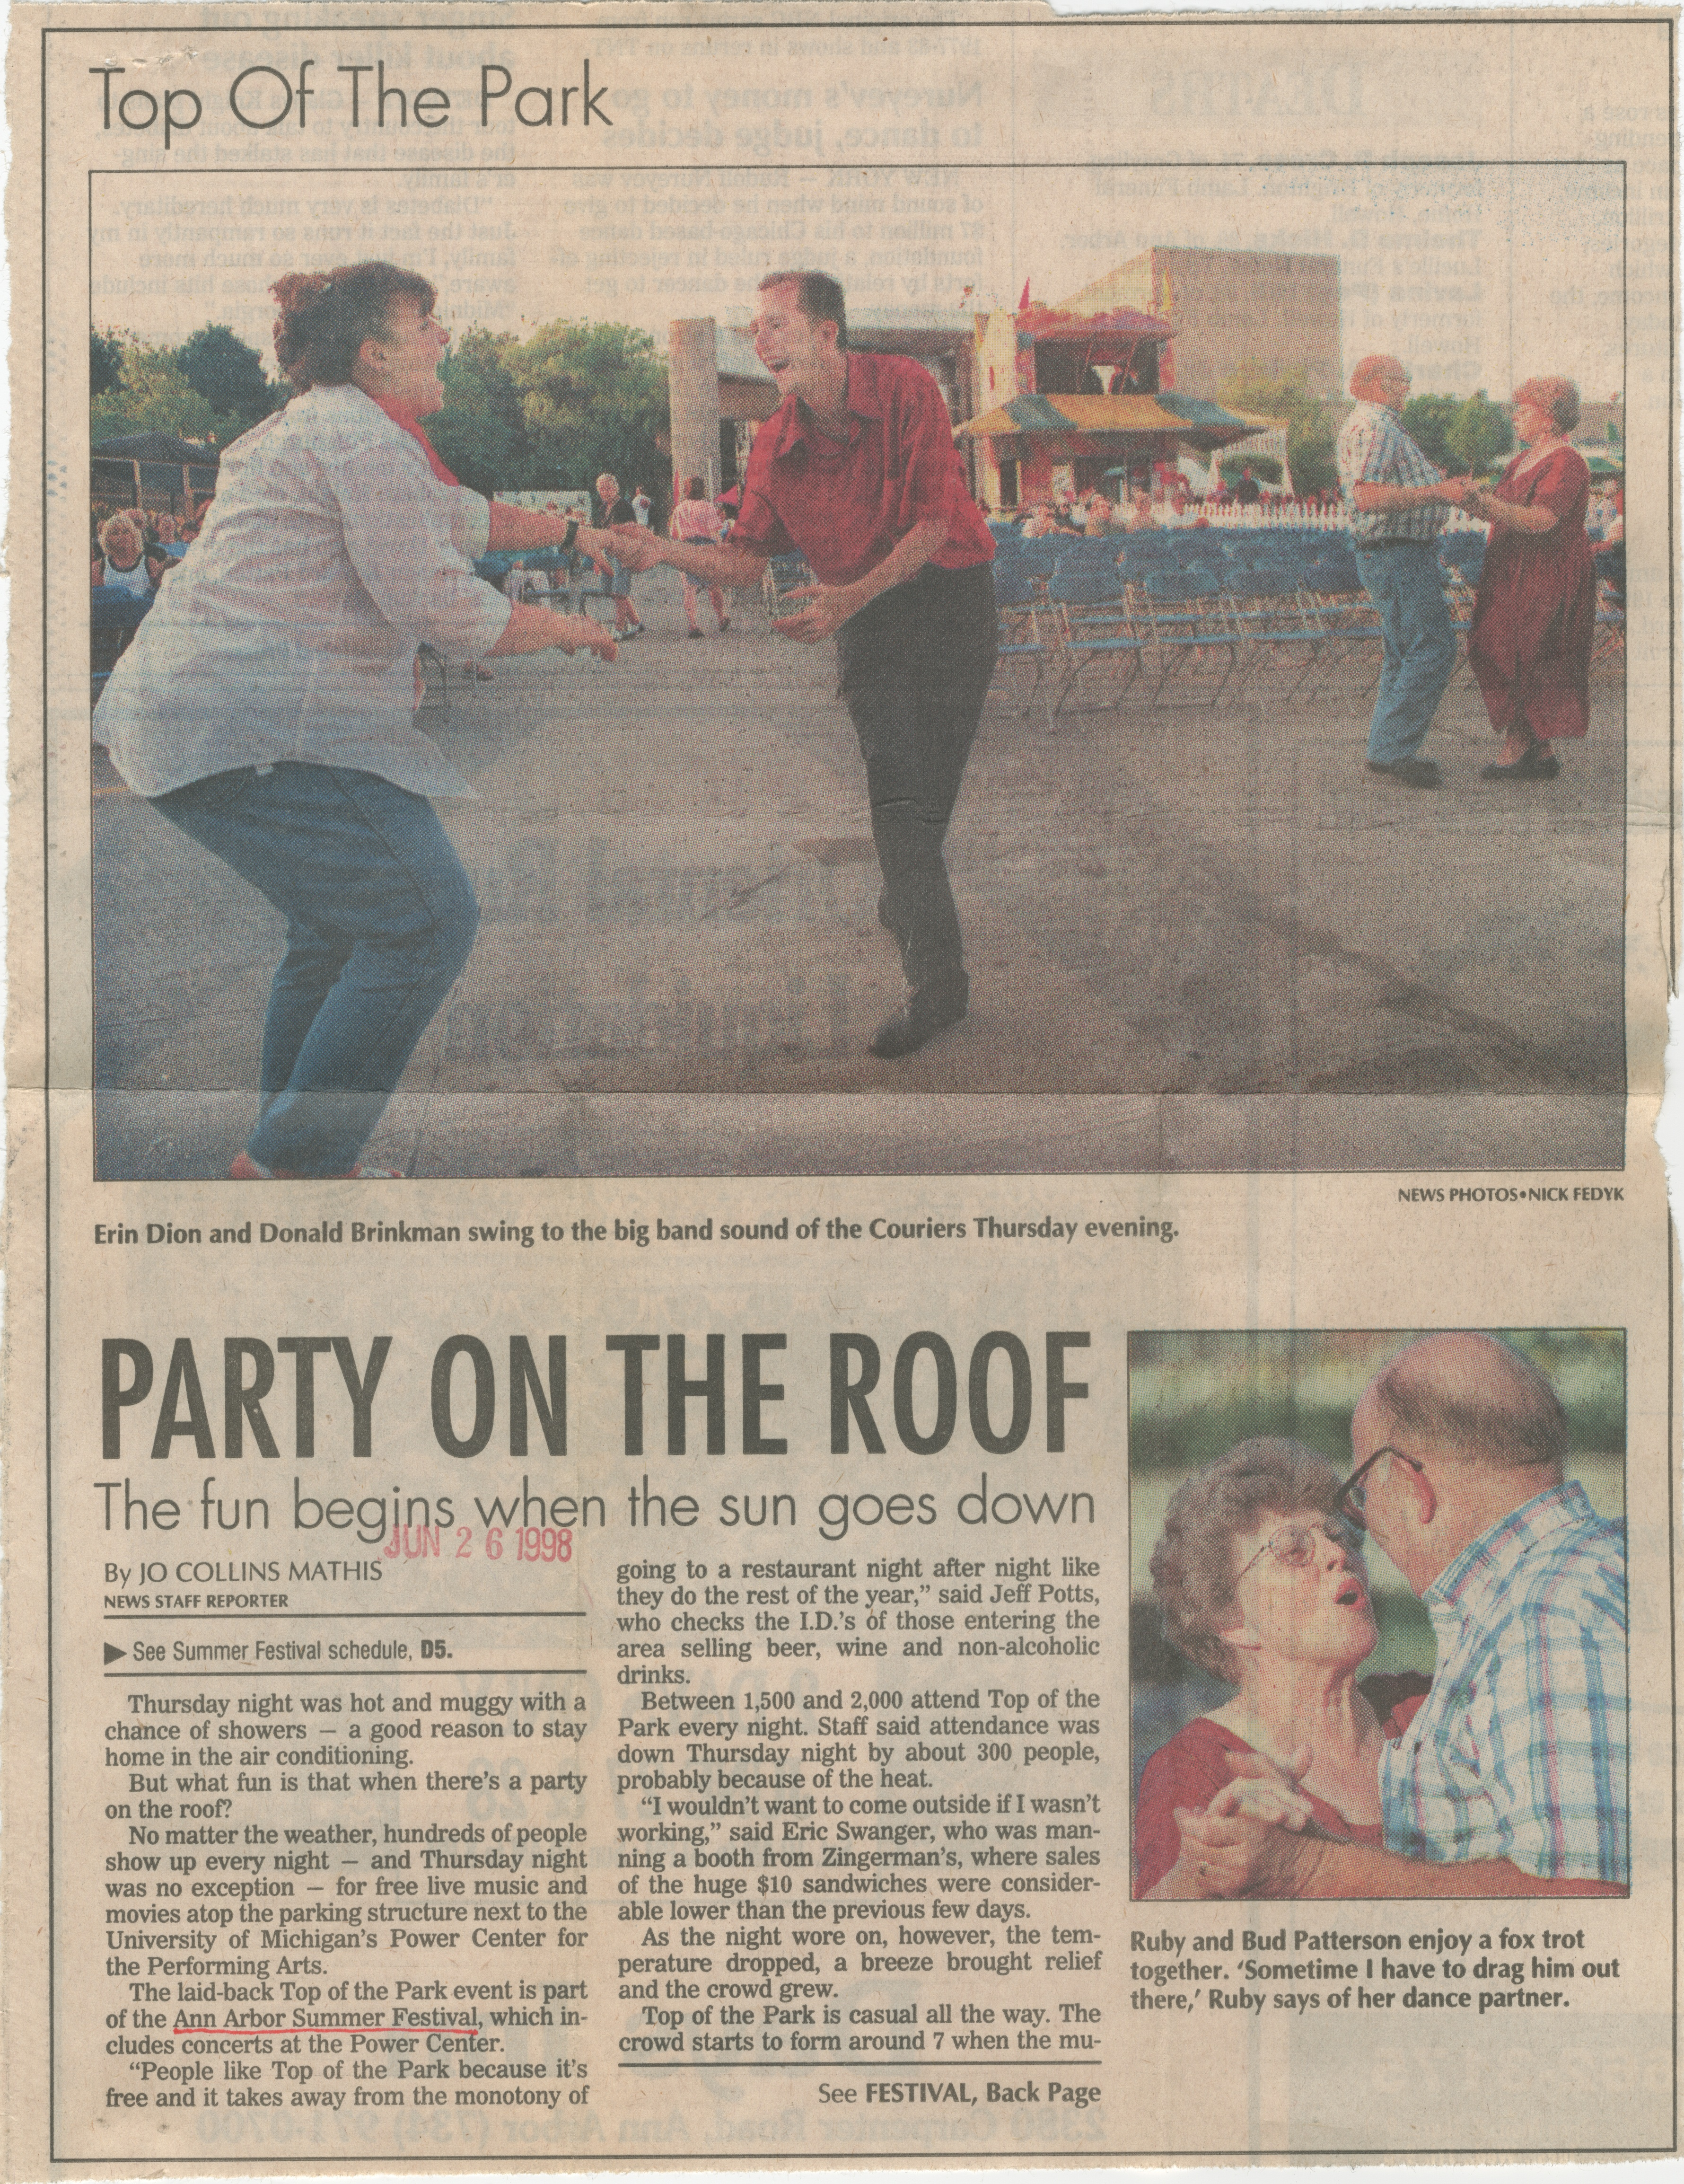 PARTY ON THE ROOF image